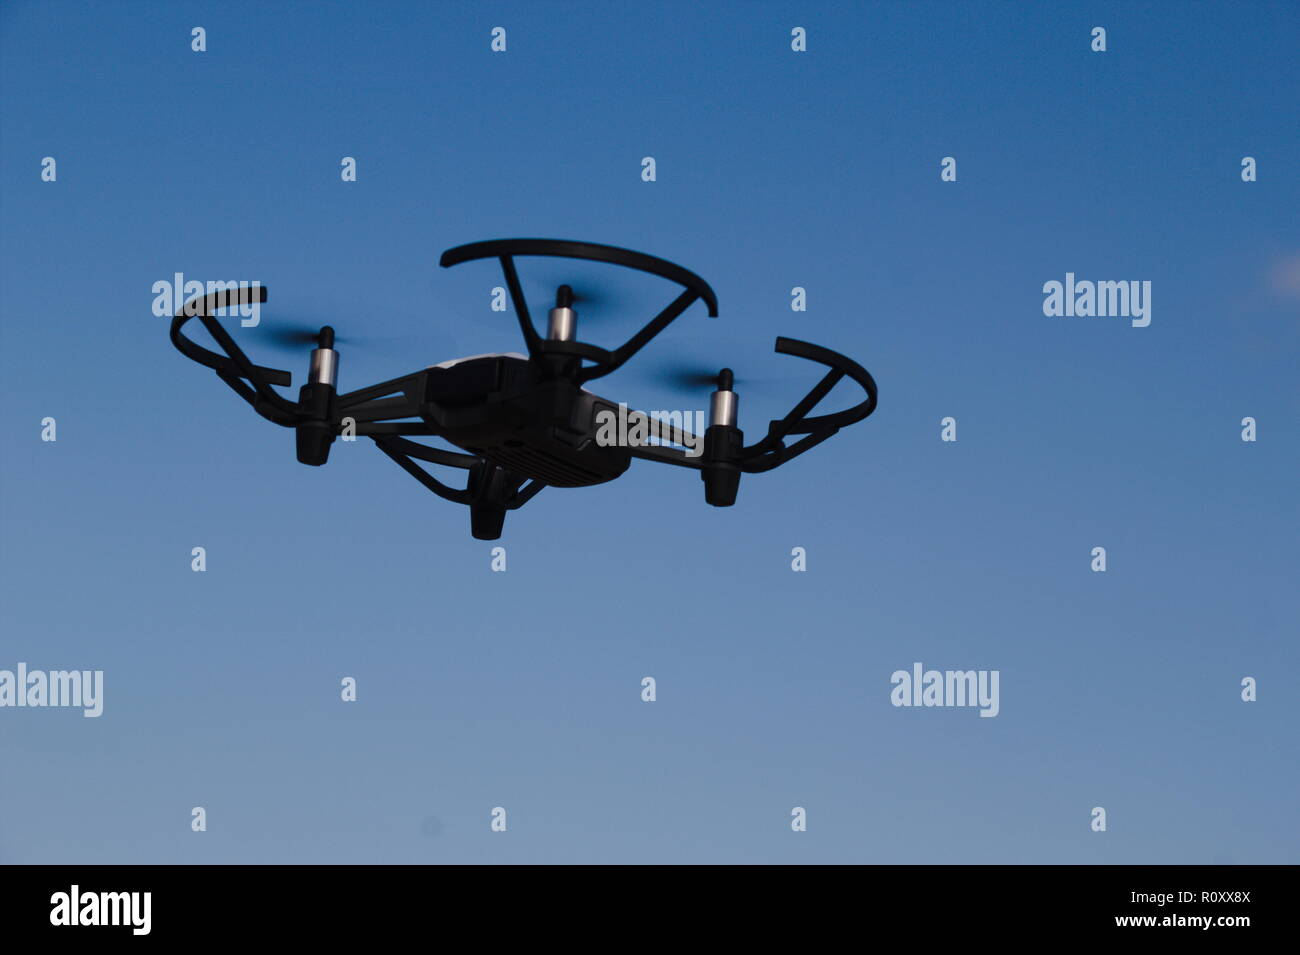 Flying drone howering in the sky - Stock Image